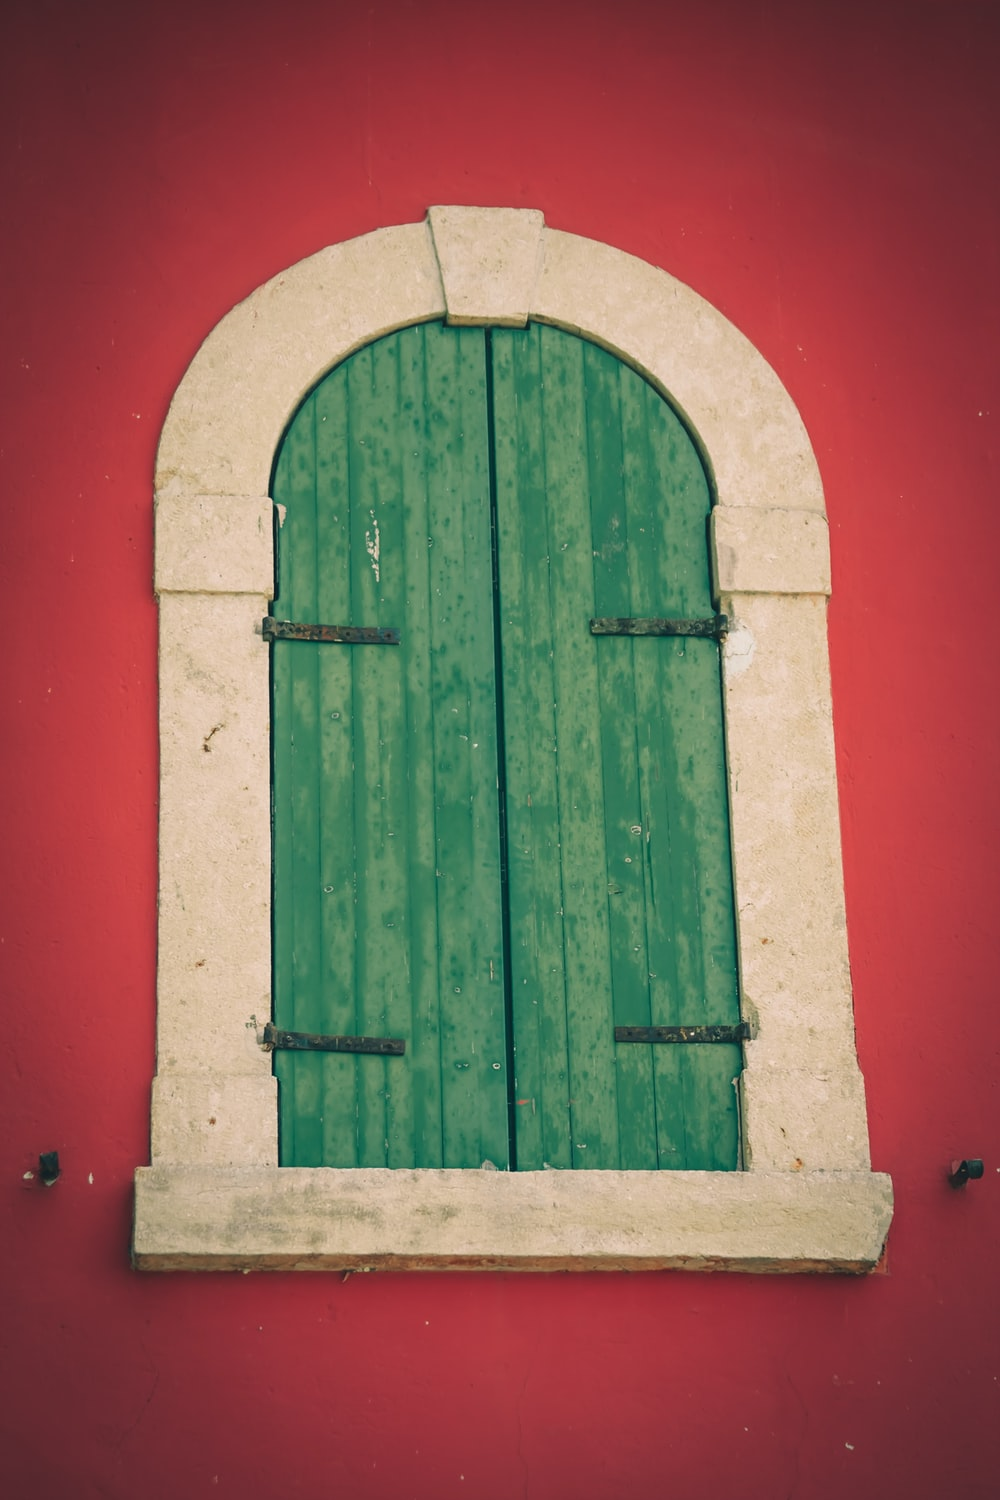 green wooden window on red wall